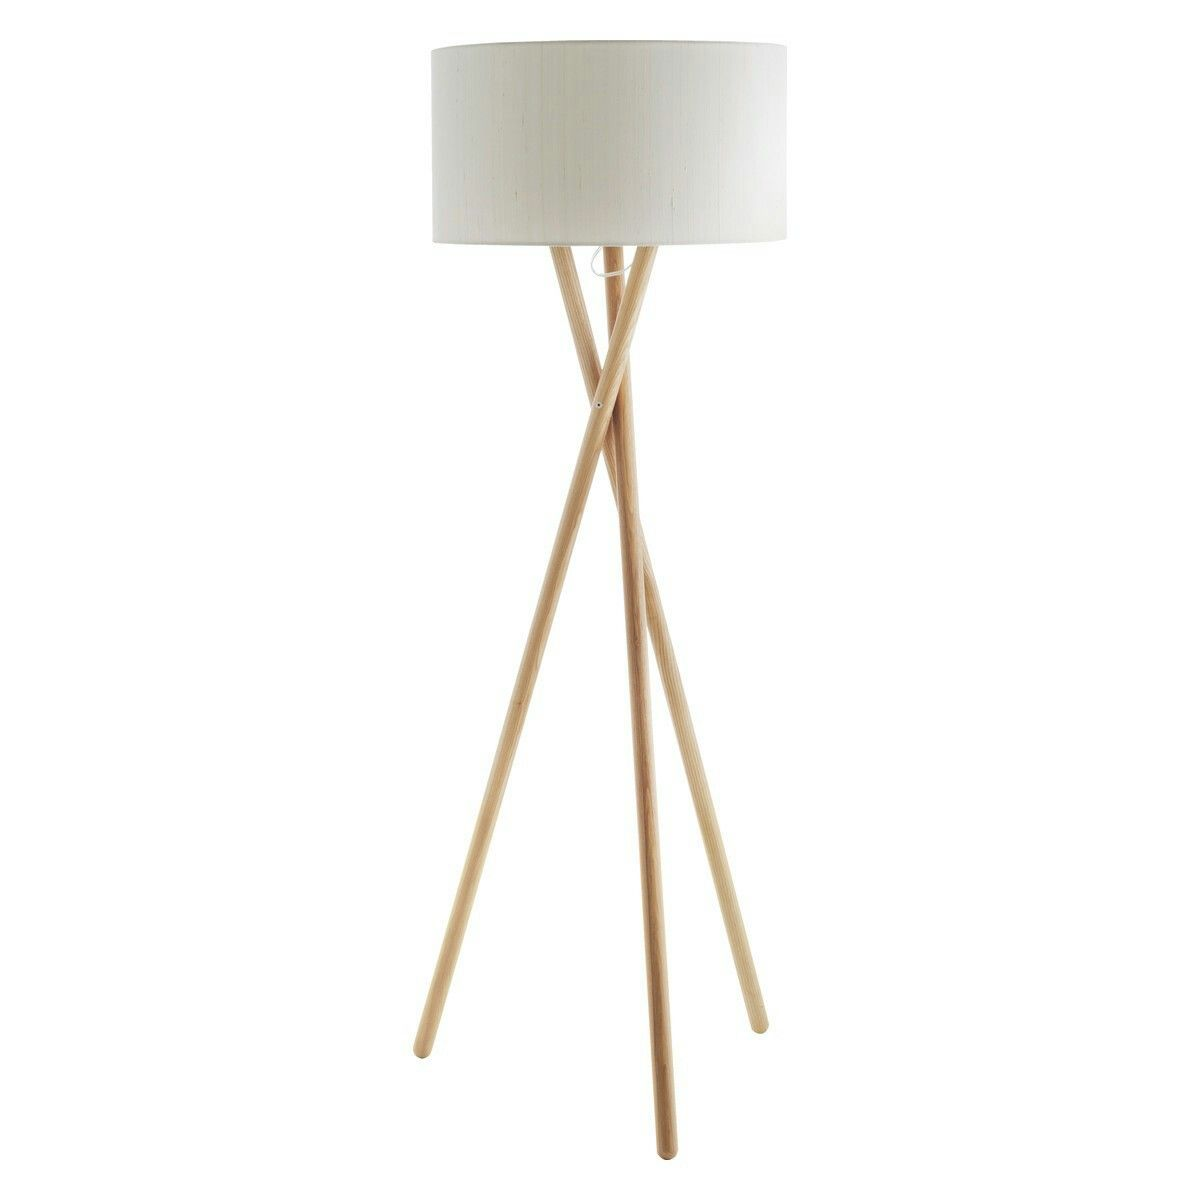 Tripod Lamp From Habitat Wooden Tripod Floor Lamp Wooden Floor Lamps Floor Lamp Base